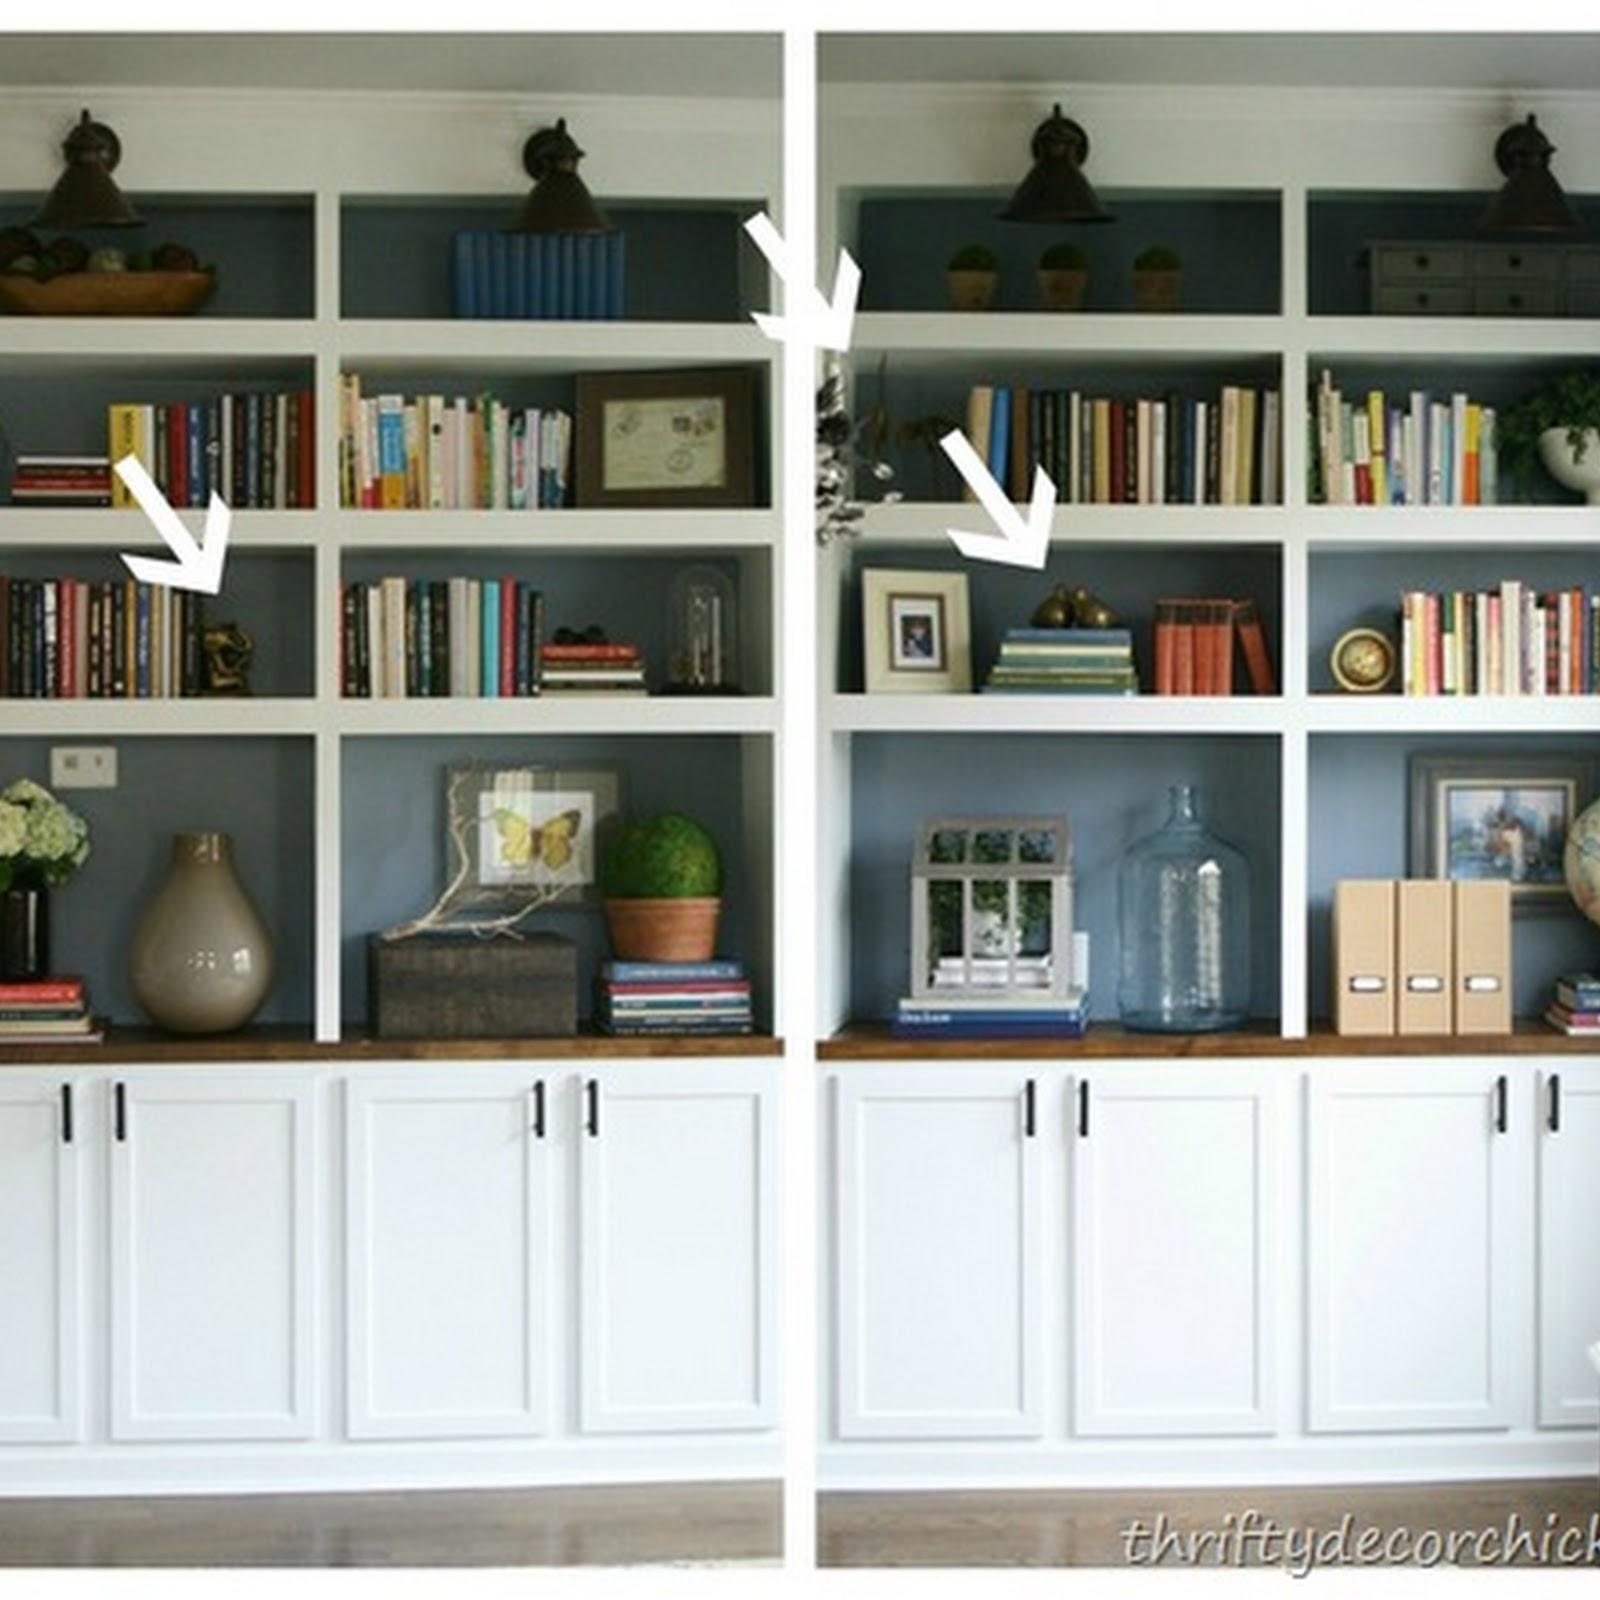 Five simple tips for decorating bookcases